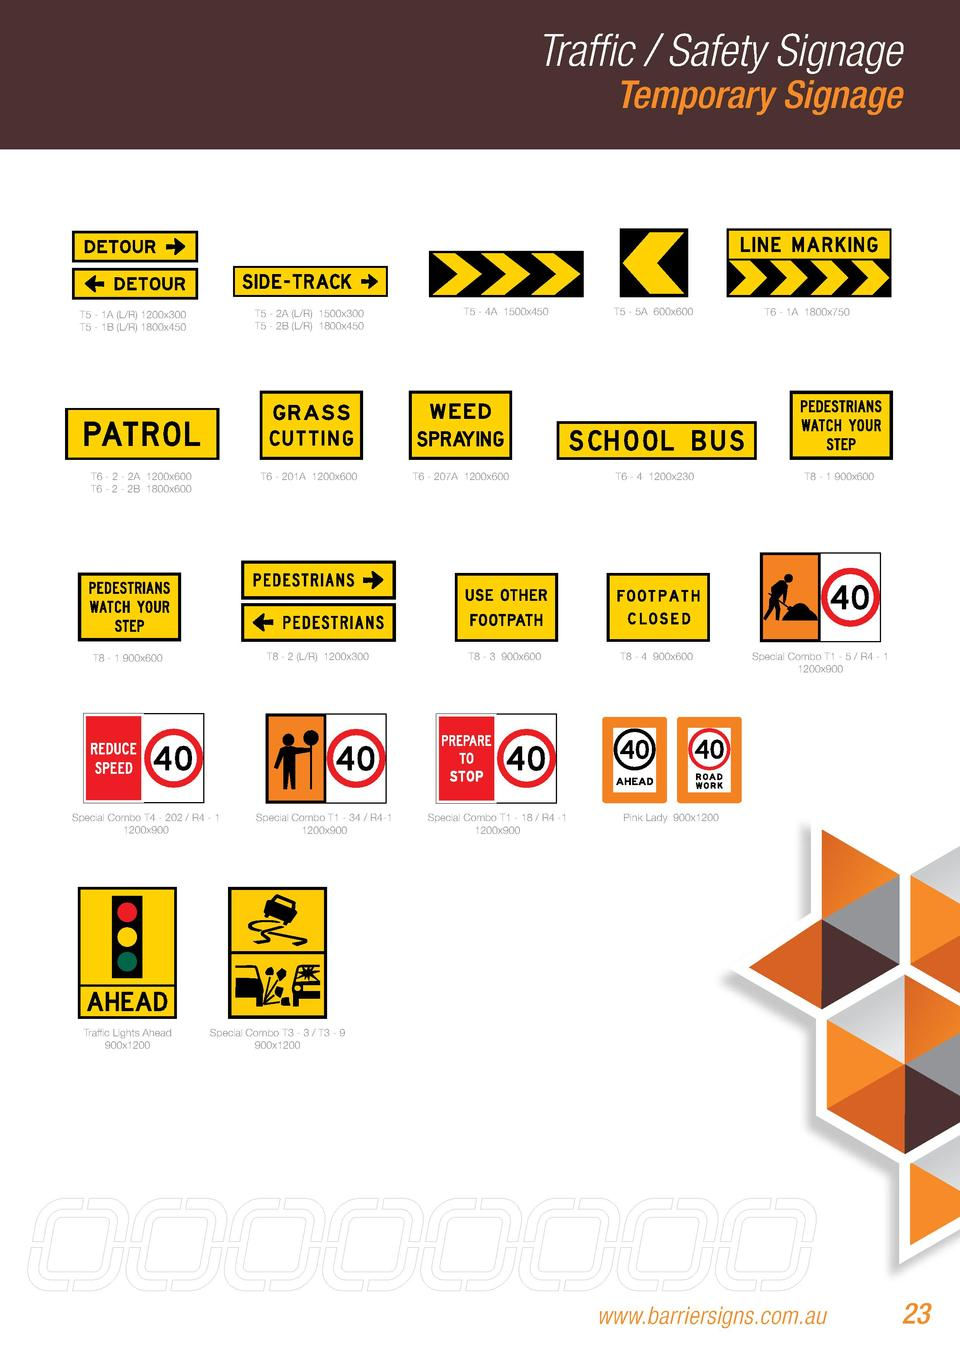 Traffic   Safety Signage Temporary Signage  T5 - 2A  L R  1500x300 T5 - 2B  L R  1800x450  T5 - 1A  L R  1200x300 T5 - 1B ...